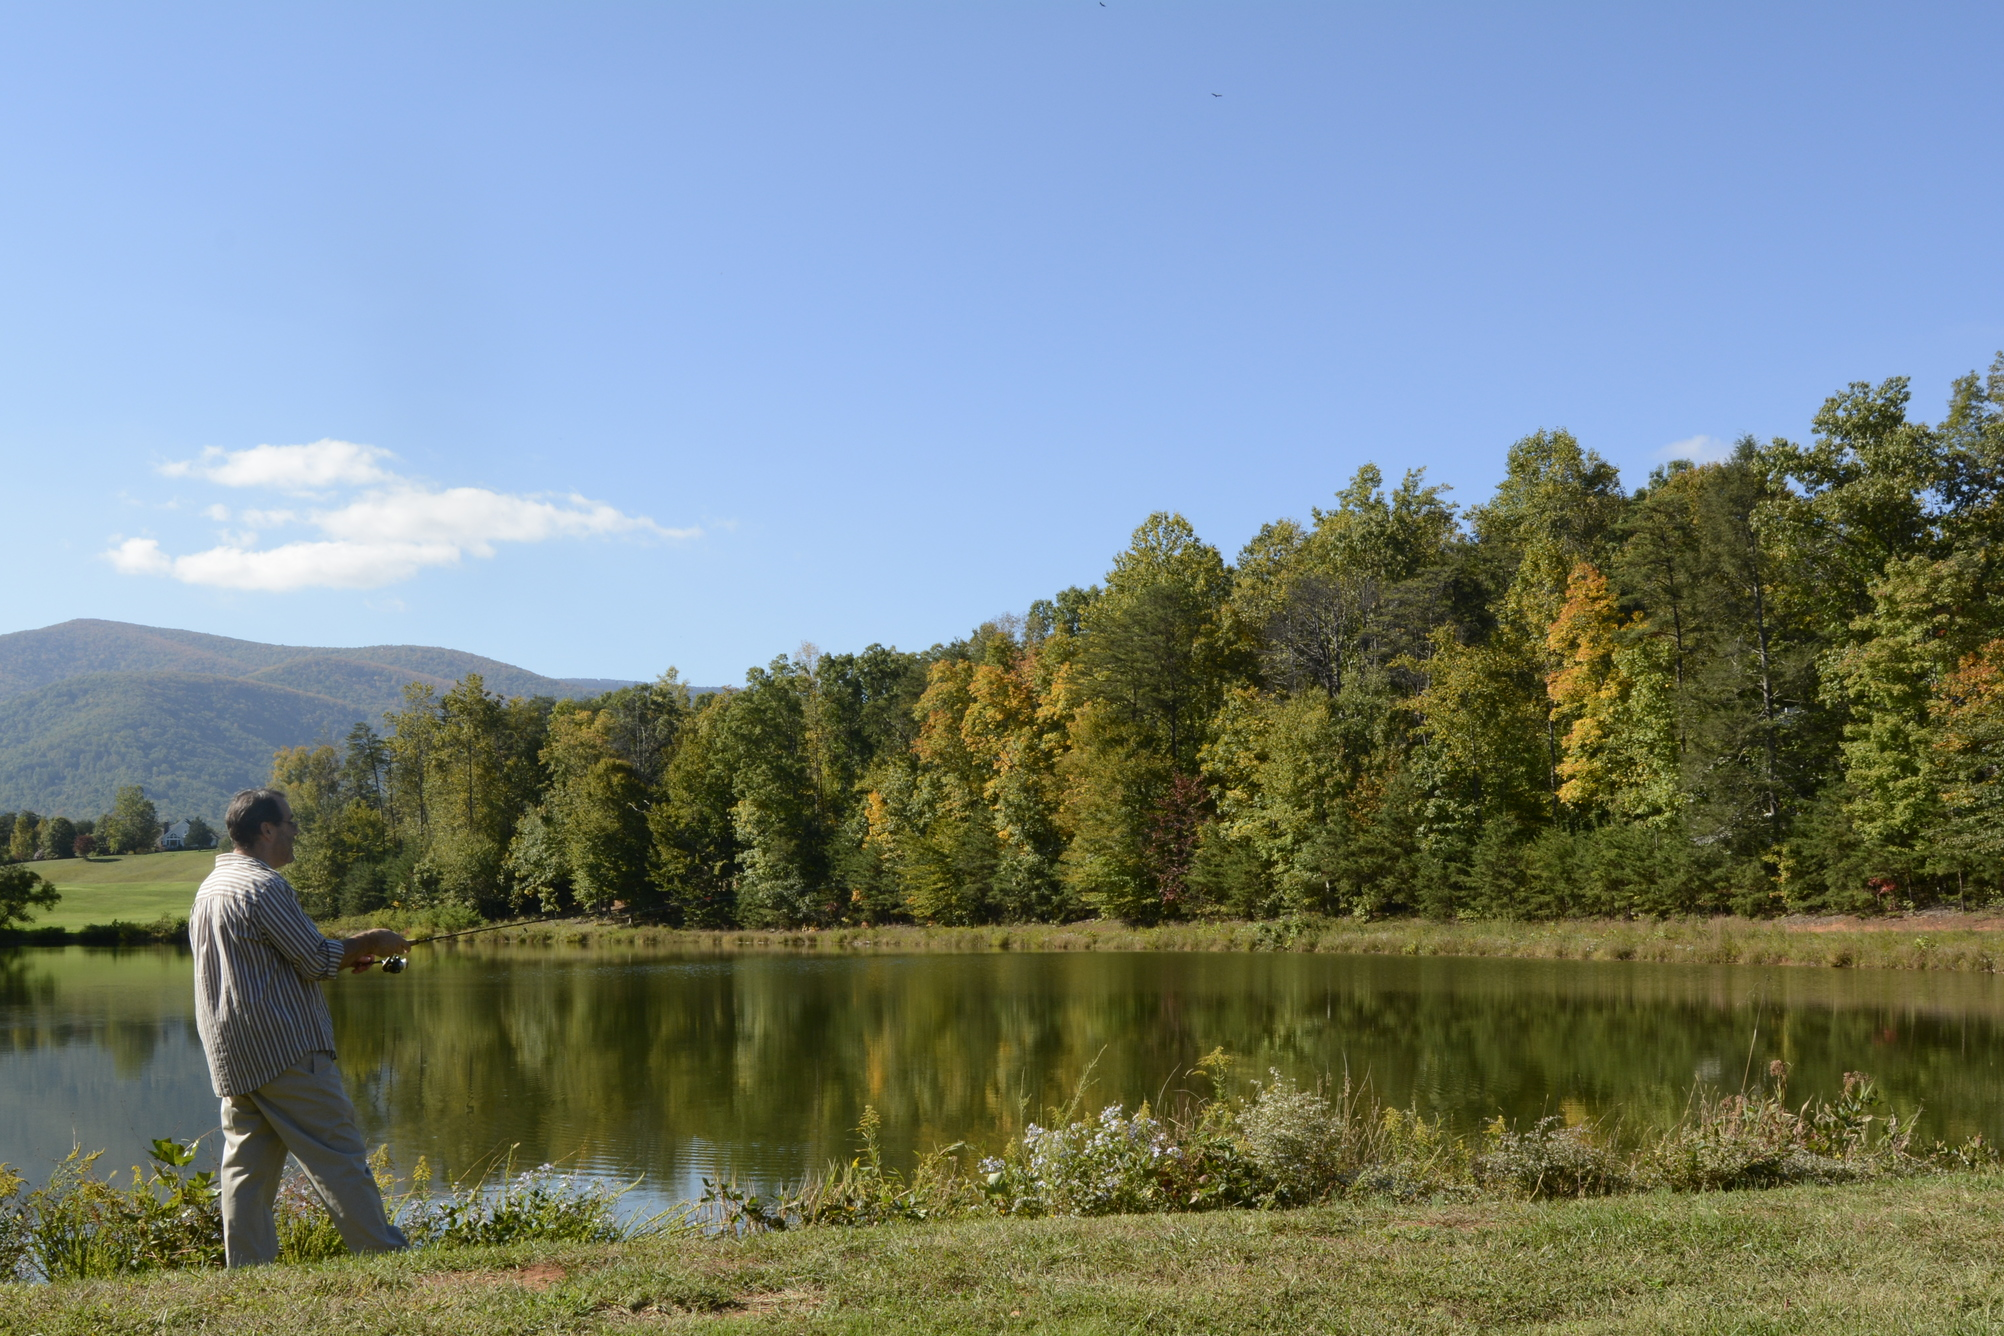 There is a stocked, private  trout steam and a dozen lakes and ponds (including a  trout pond ) reserved for Wintergreen property owners and their guests.  Wintergreen Sporting Club  members visit and report on area fishing opportunities, such as nearby Sherando Lake and trout streams.  Details here .